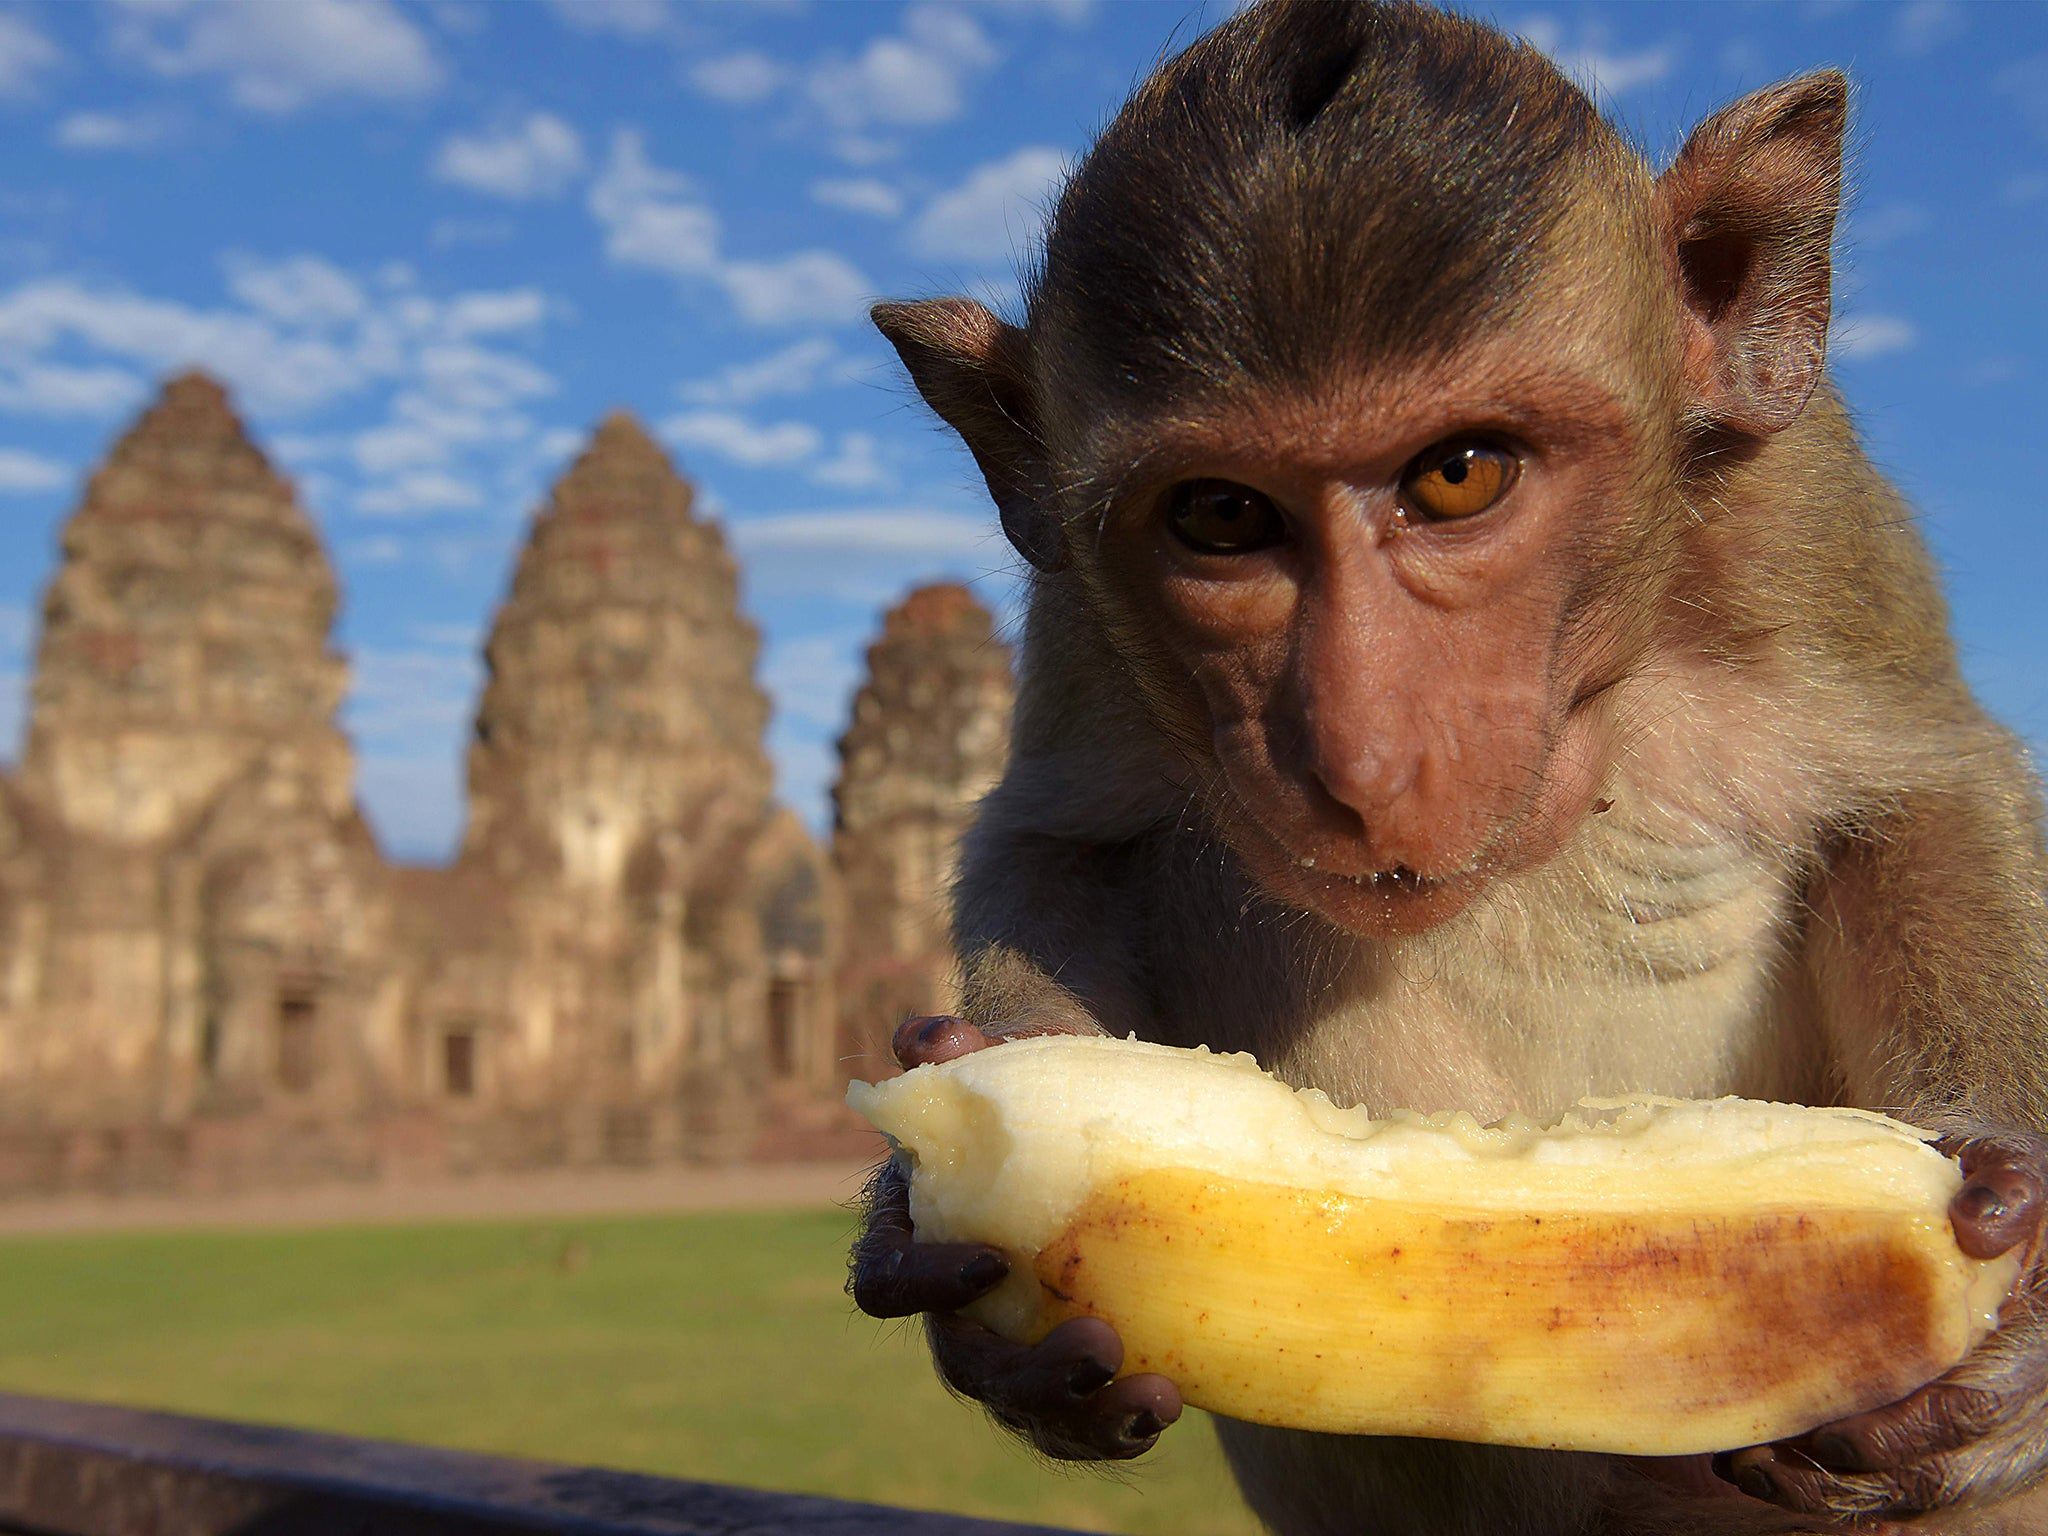 Monkeys discovered holding tourists' phones and cameras to ransom